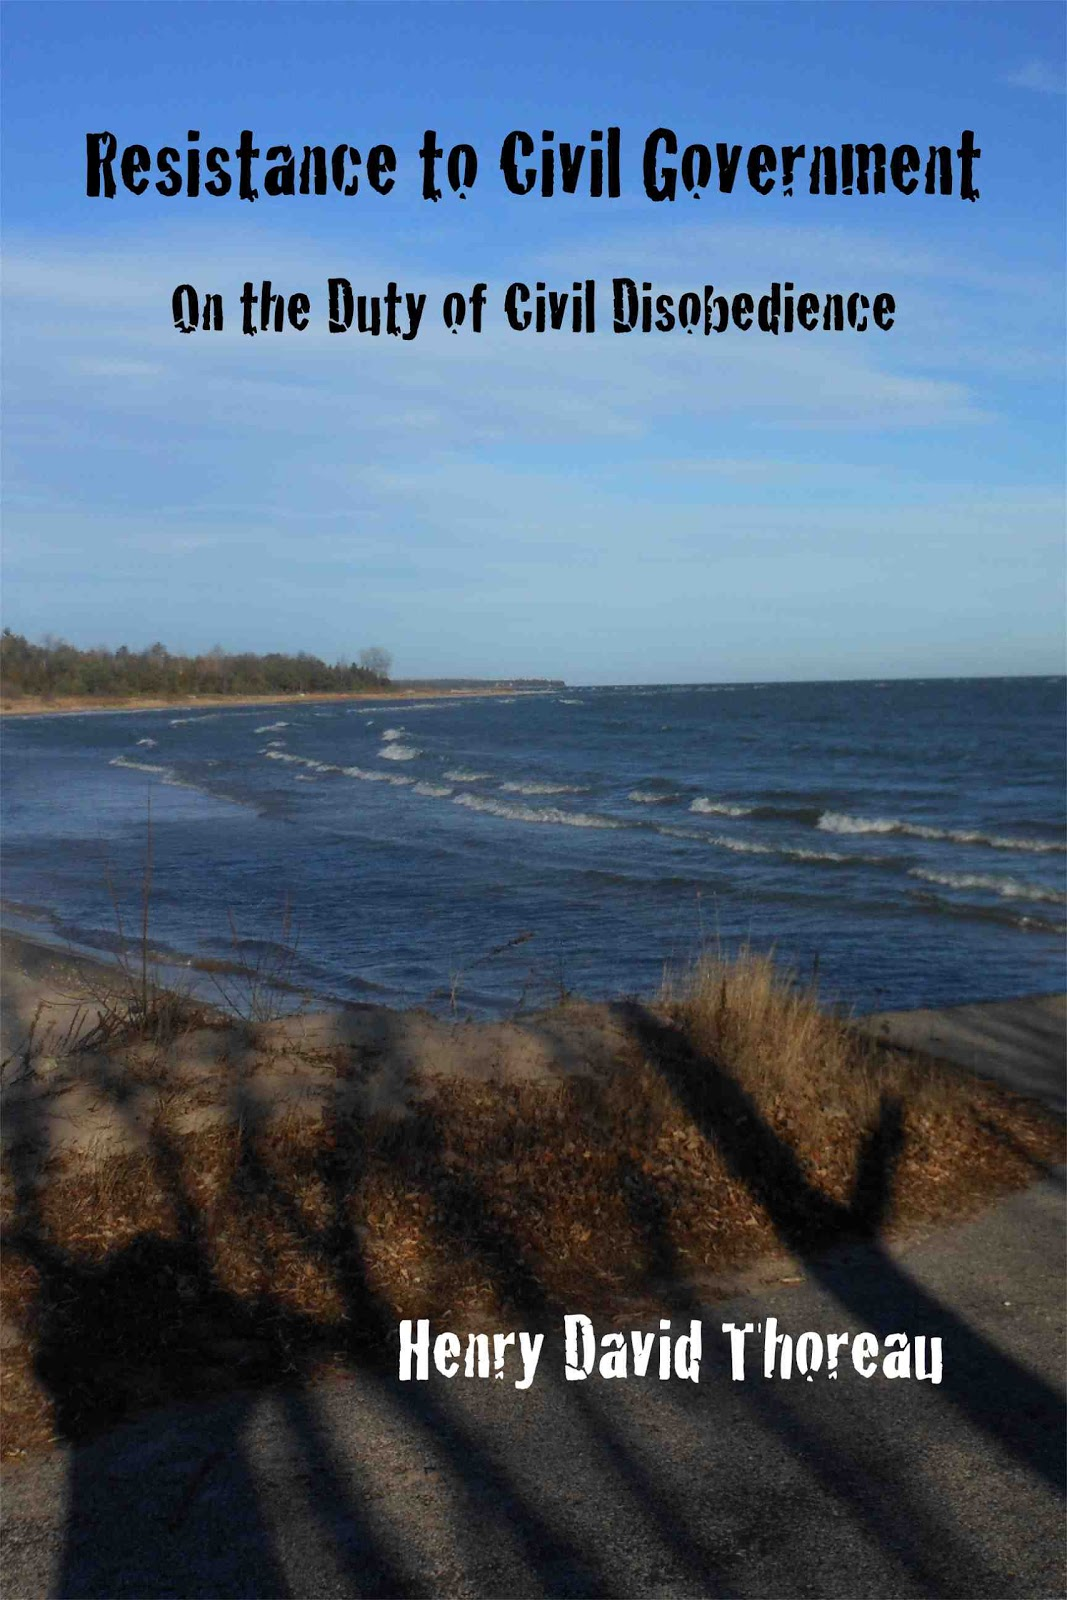 essay on civil disobedience analysis  analysis and summary of civil disobedience by henry david thoreau